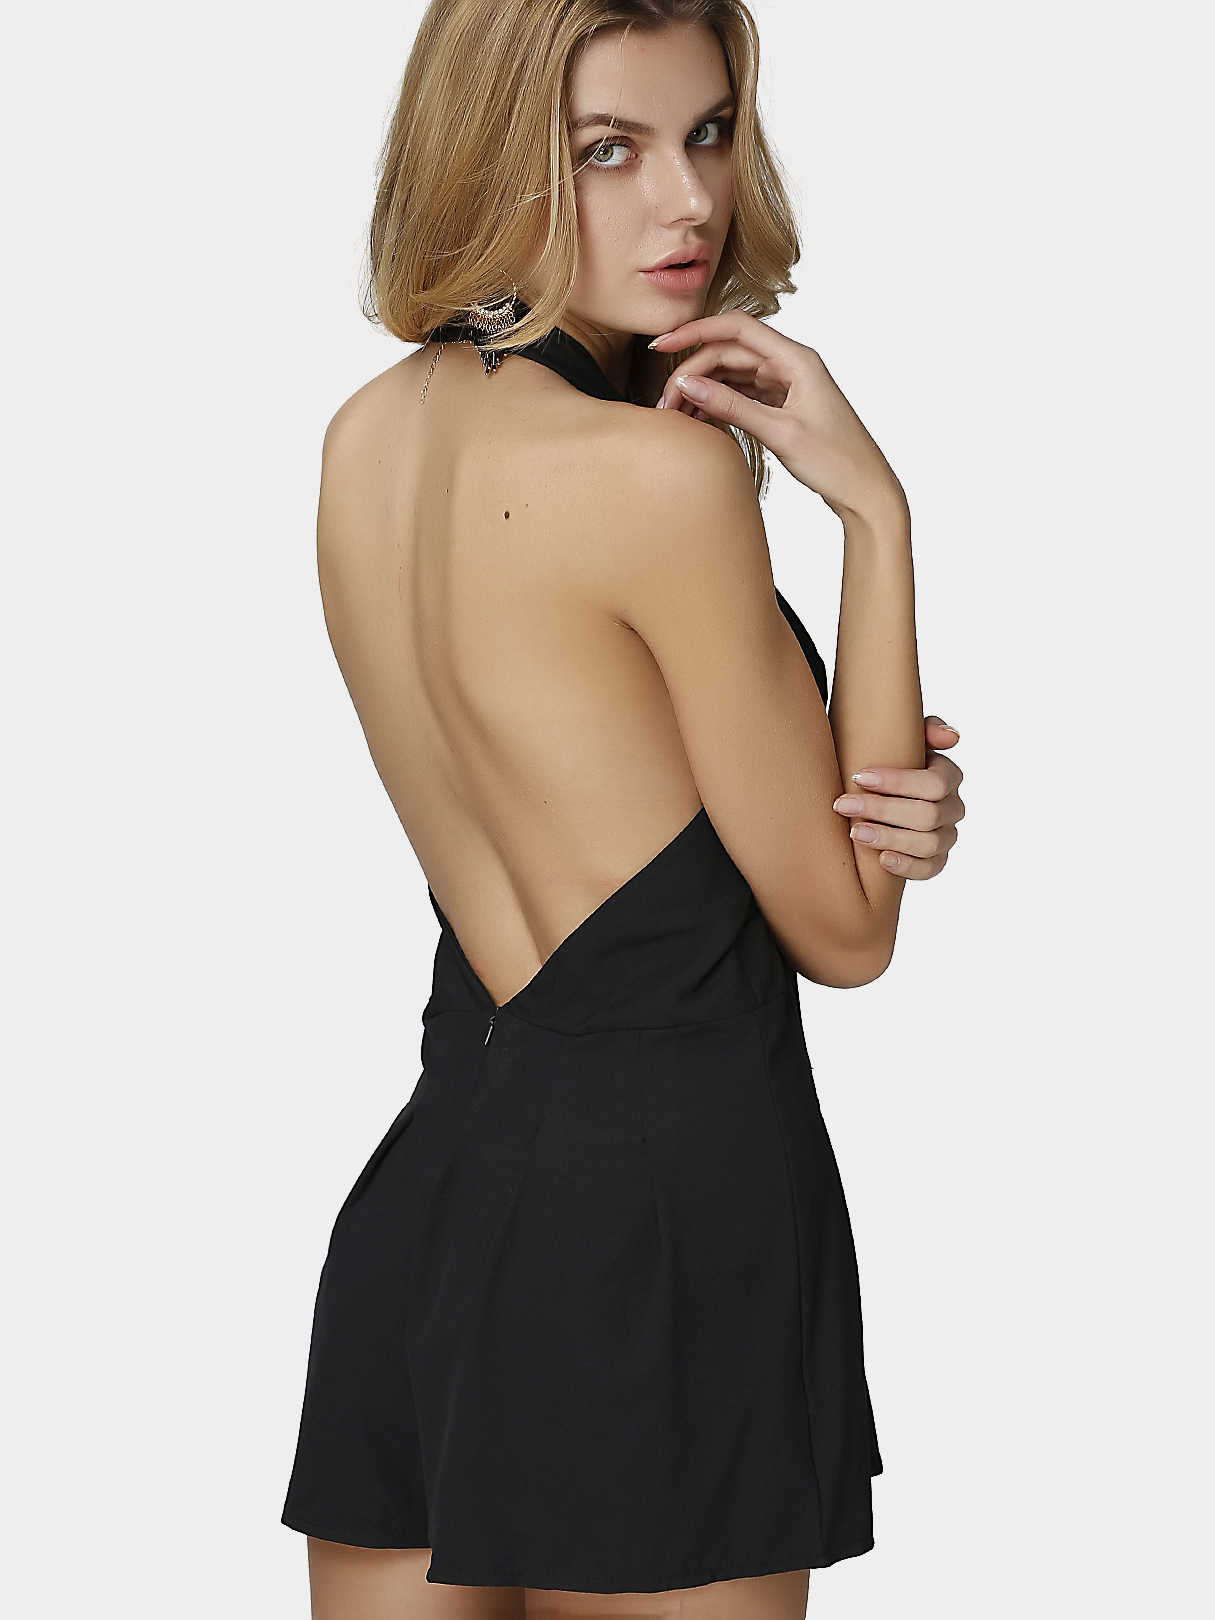 Plunge Sleeveless Backless Halter Playsuit in Black red backless sleeveless halter playsuit